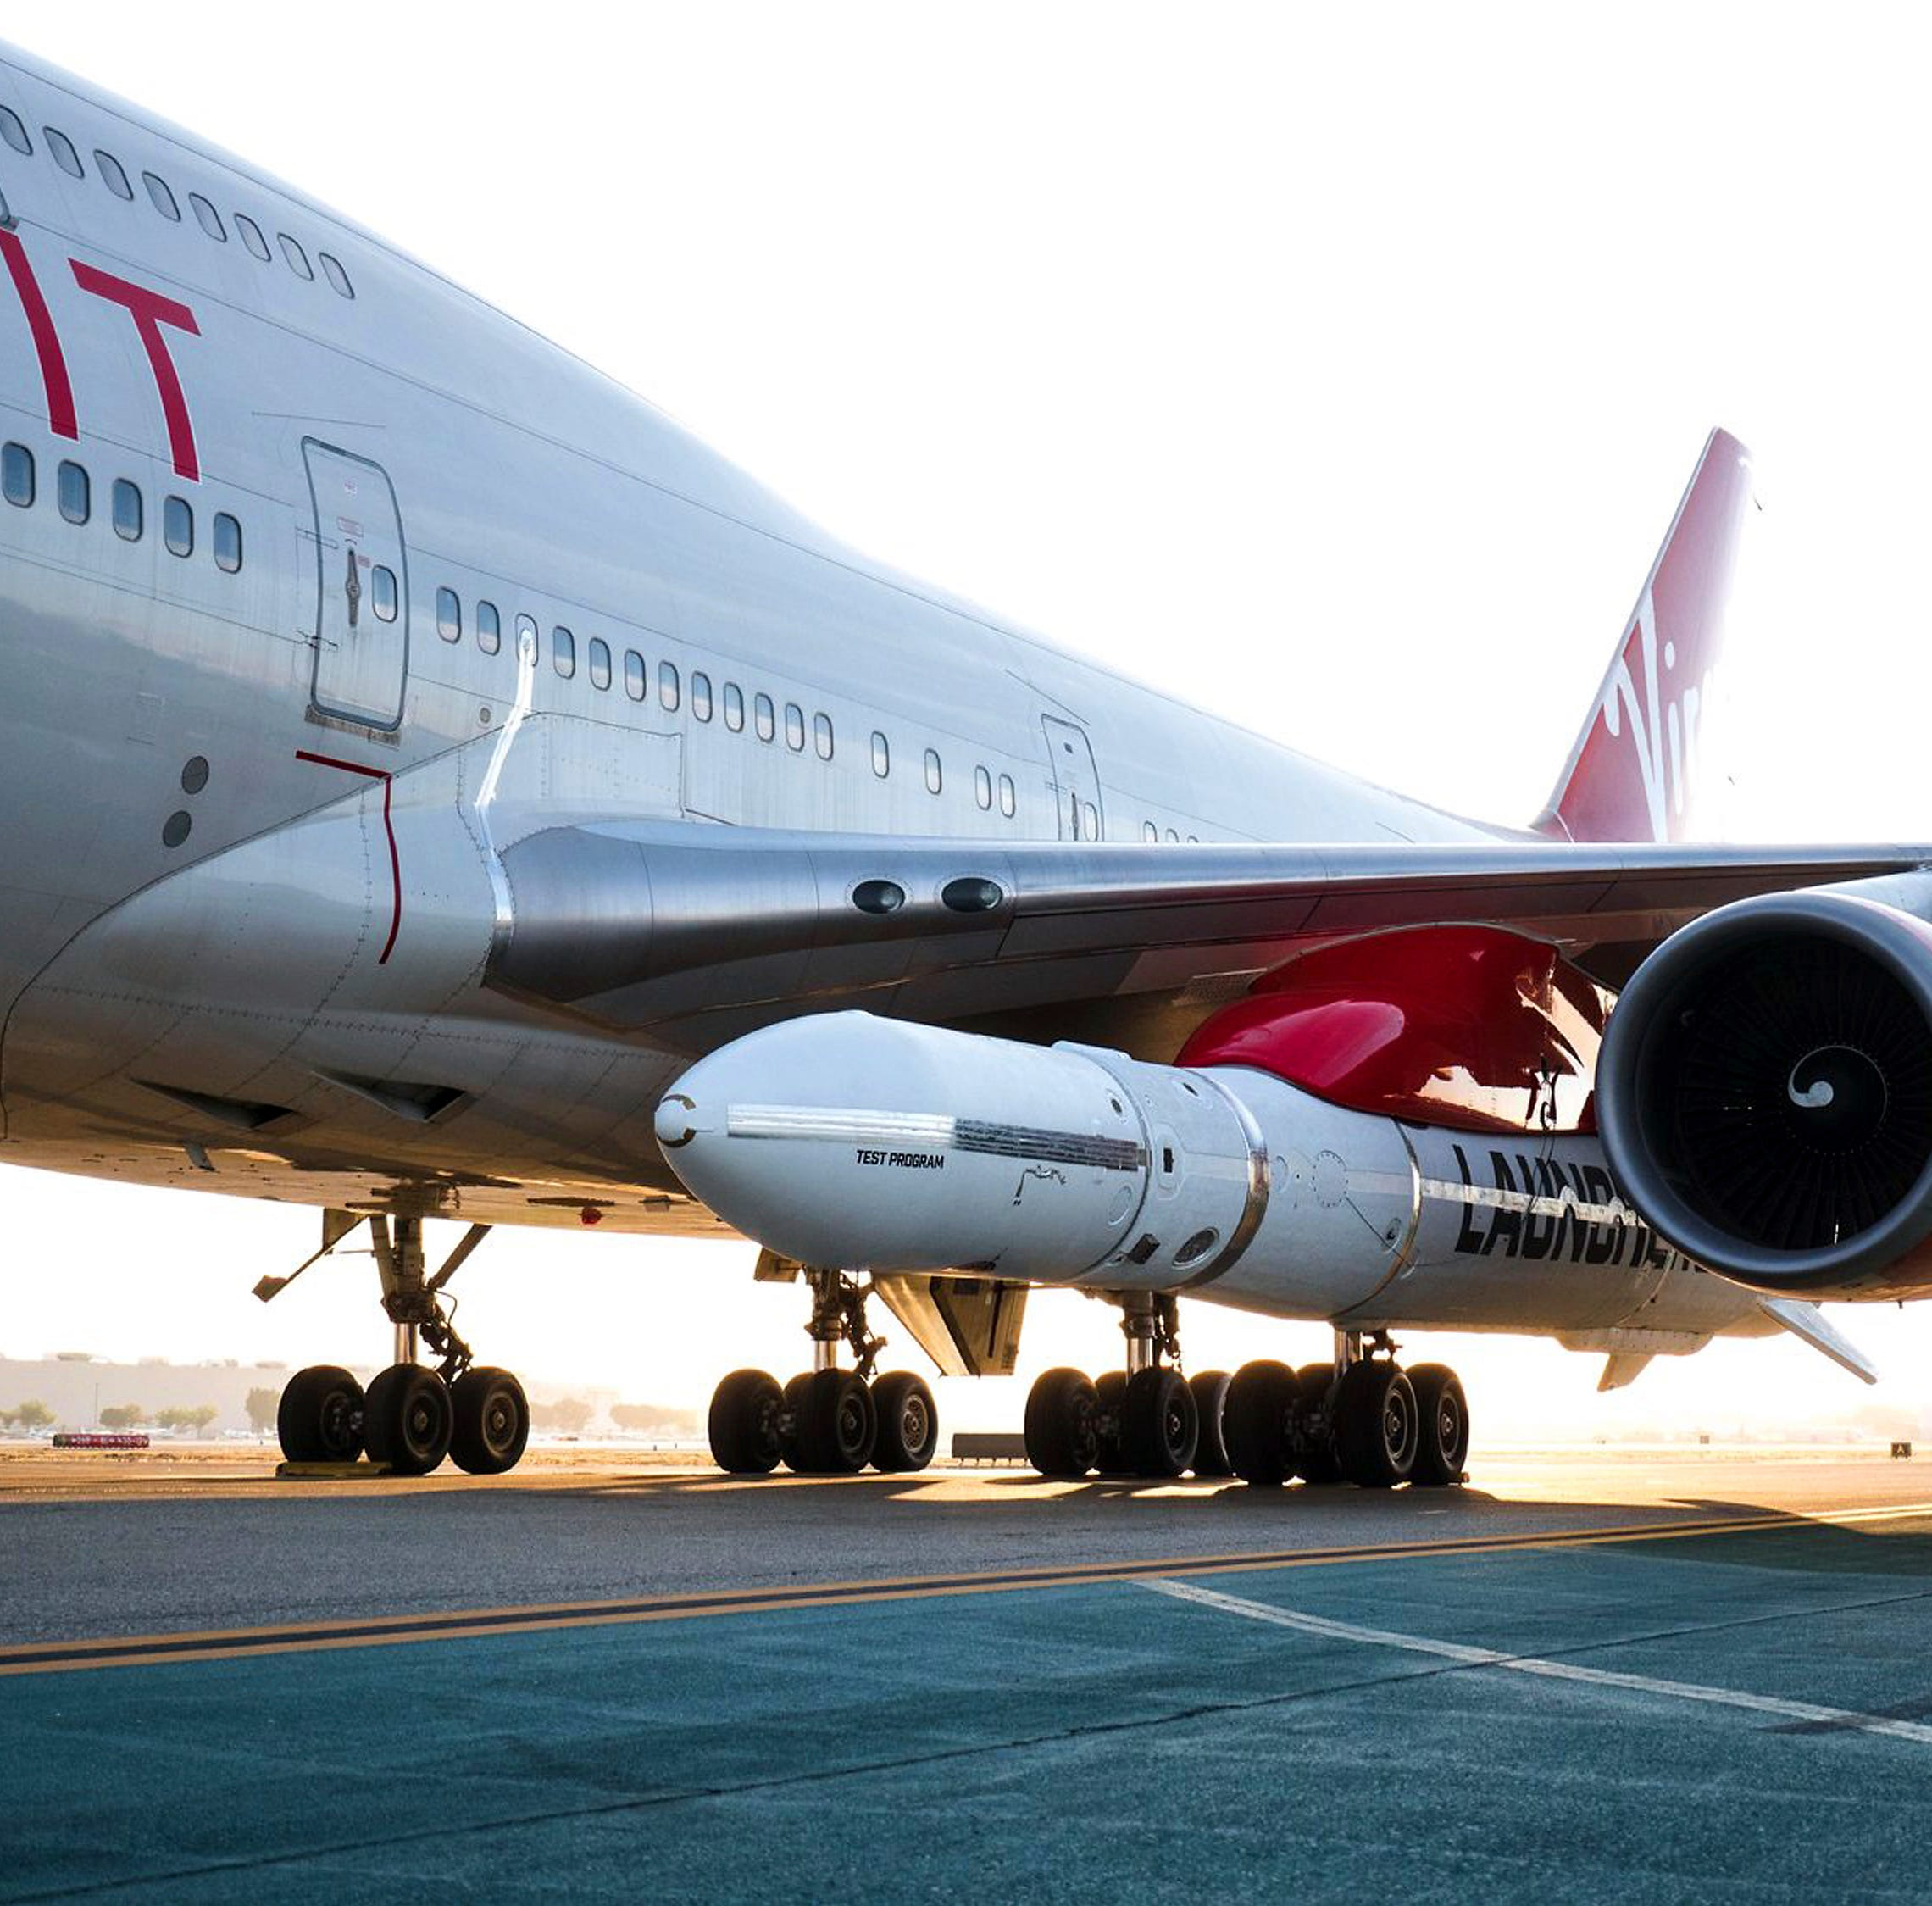 Guam selected as Virgin Orbit LauncherOne spaceport